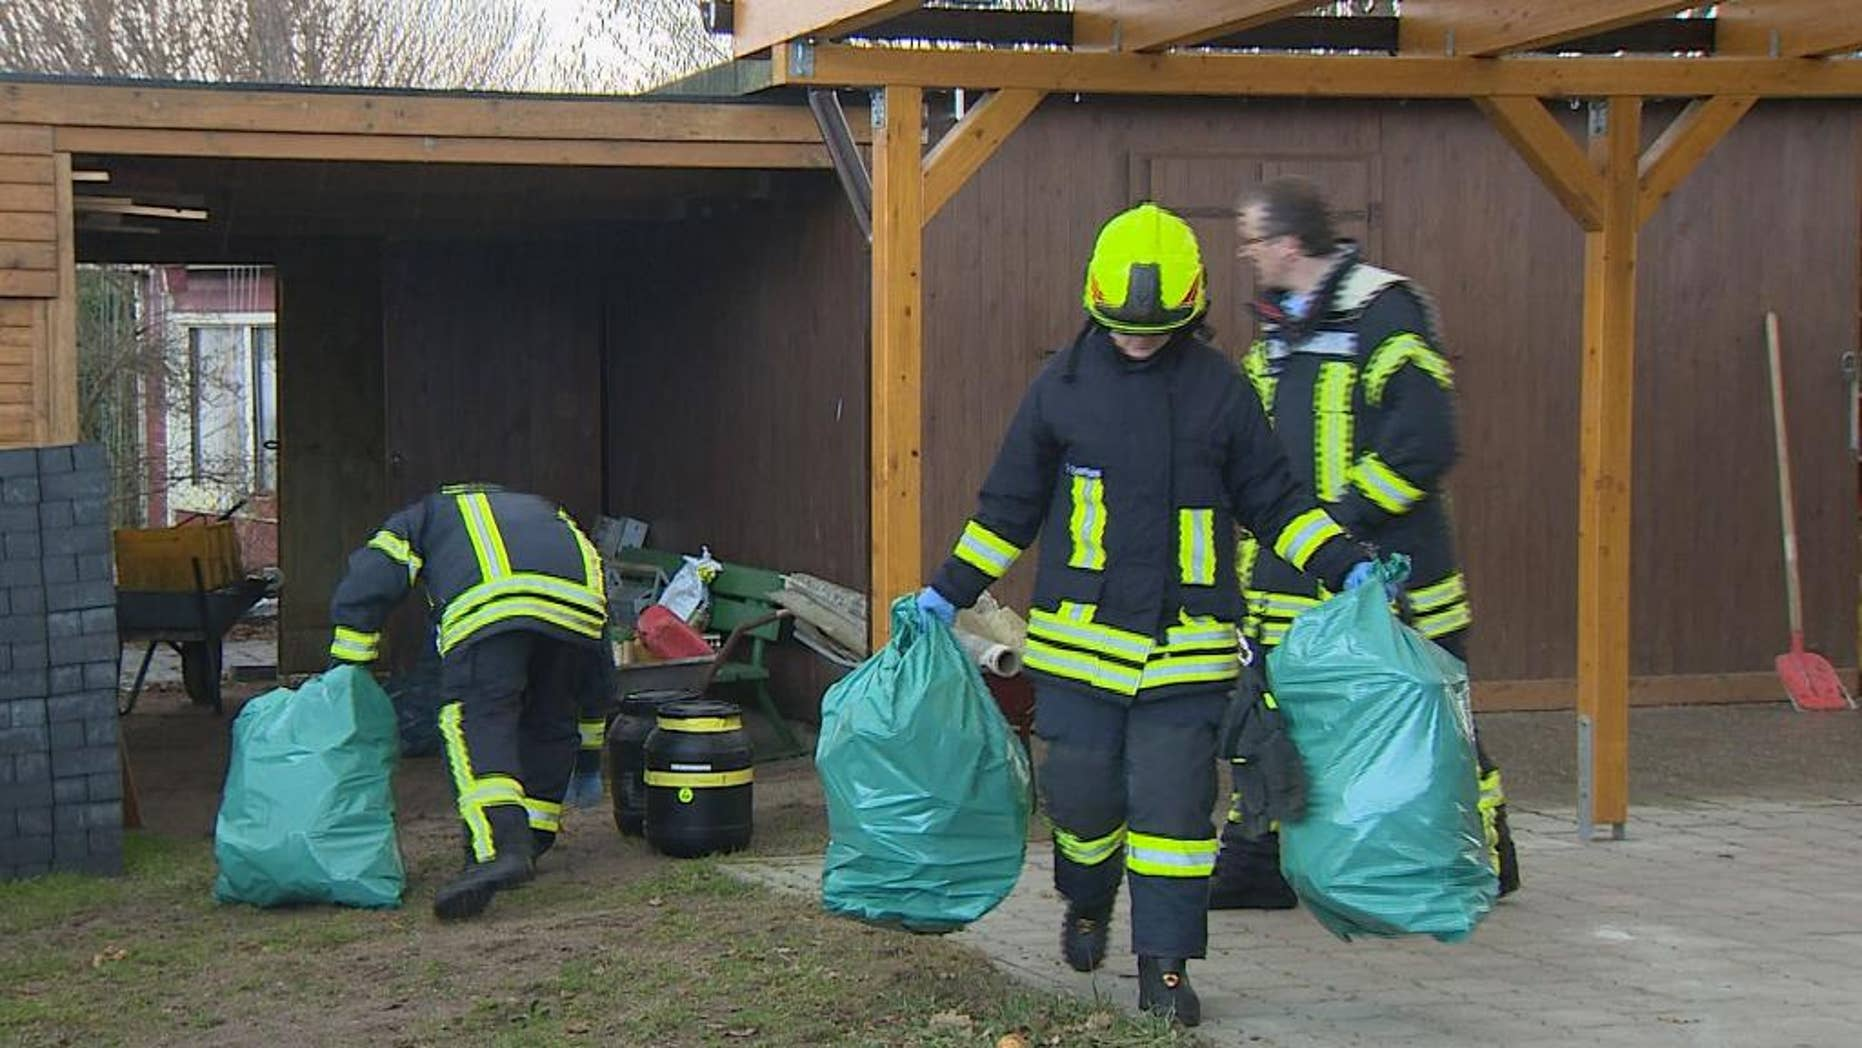 """Firefighters carry plastic bags in a garden in Preetz near Kiel, northern Germany, Tuesday afternoon, Feb. 24, 2015. Workers clearing a small garden property in northern Germany got a shock when they unearthed a rusted can labeled """"Zyklon B"""" _ the deadly poison gas used by the Nazis in the death chambers of Auschwitz and other camps. Emergency crews were able to determine the can was empty, but still sealed it and removed it as a precaution. (AP Photo/dpa, Daniel Friederichs)"""